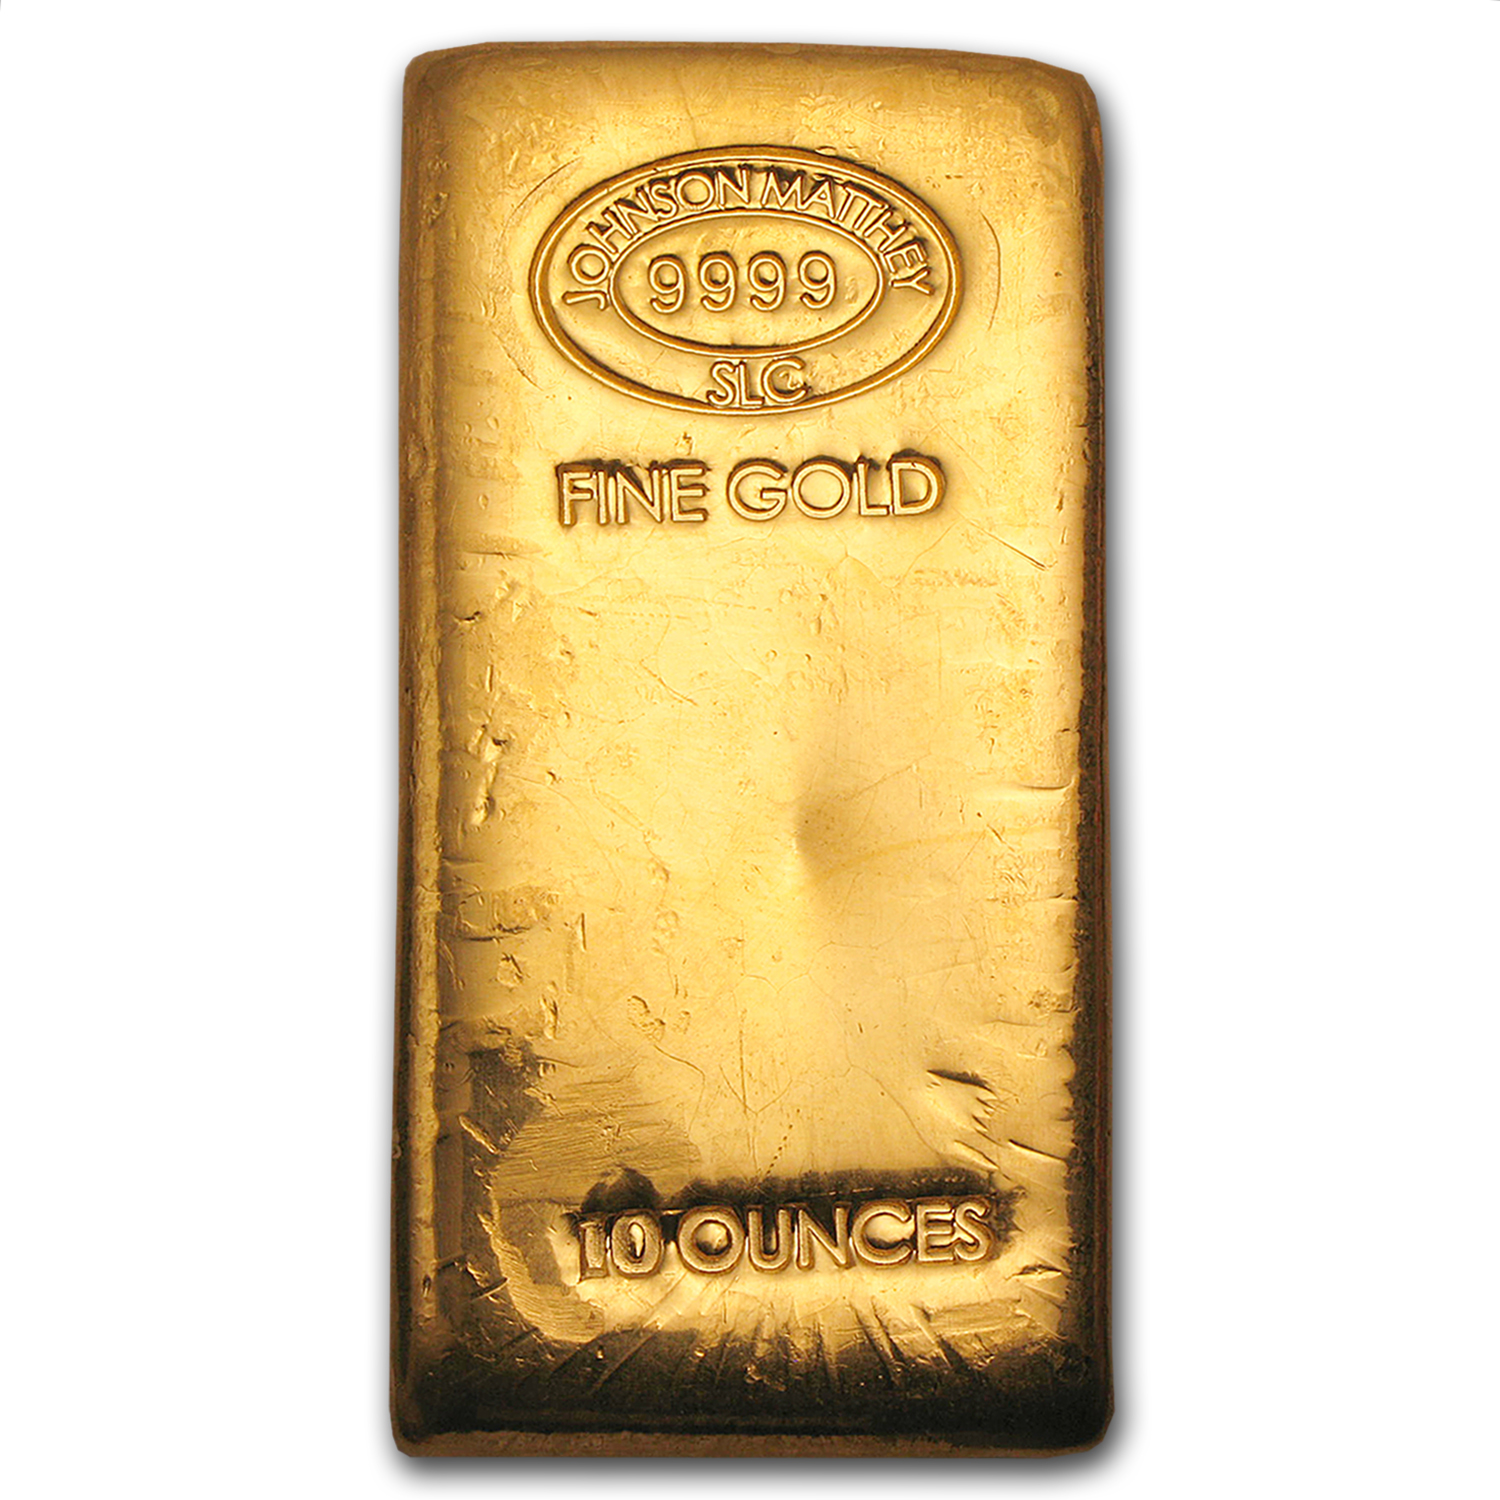 10 oz Gold Bar - Johnson Matthey (SLC)